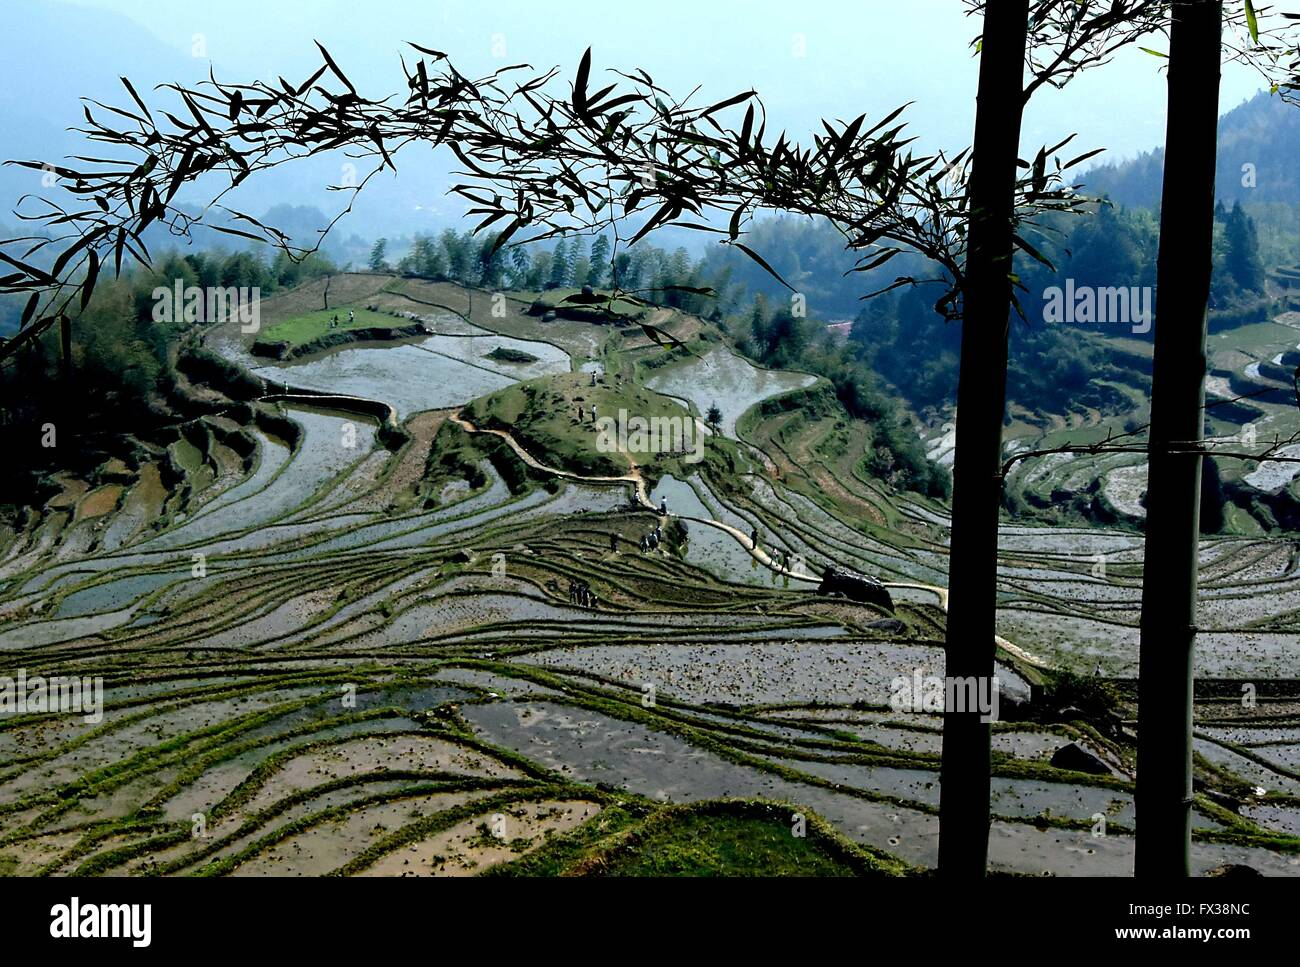 Beijing, China. 5th Apr, 2015. Photo taken on April 5, 2015 shows the terraced fields in Yunhe County, east China's - Stock Image